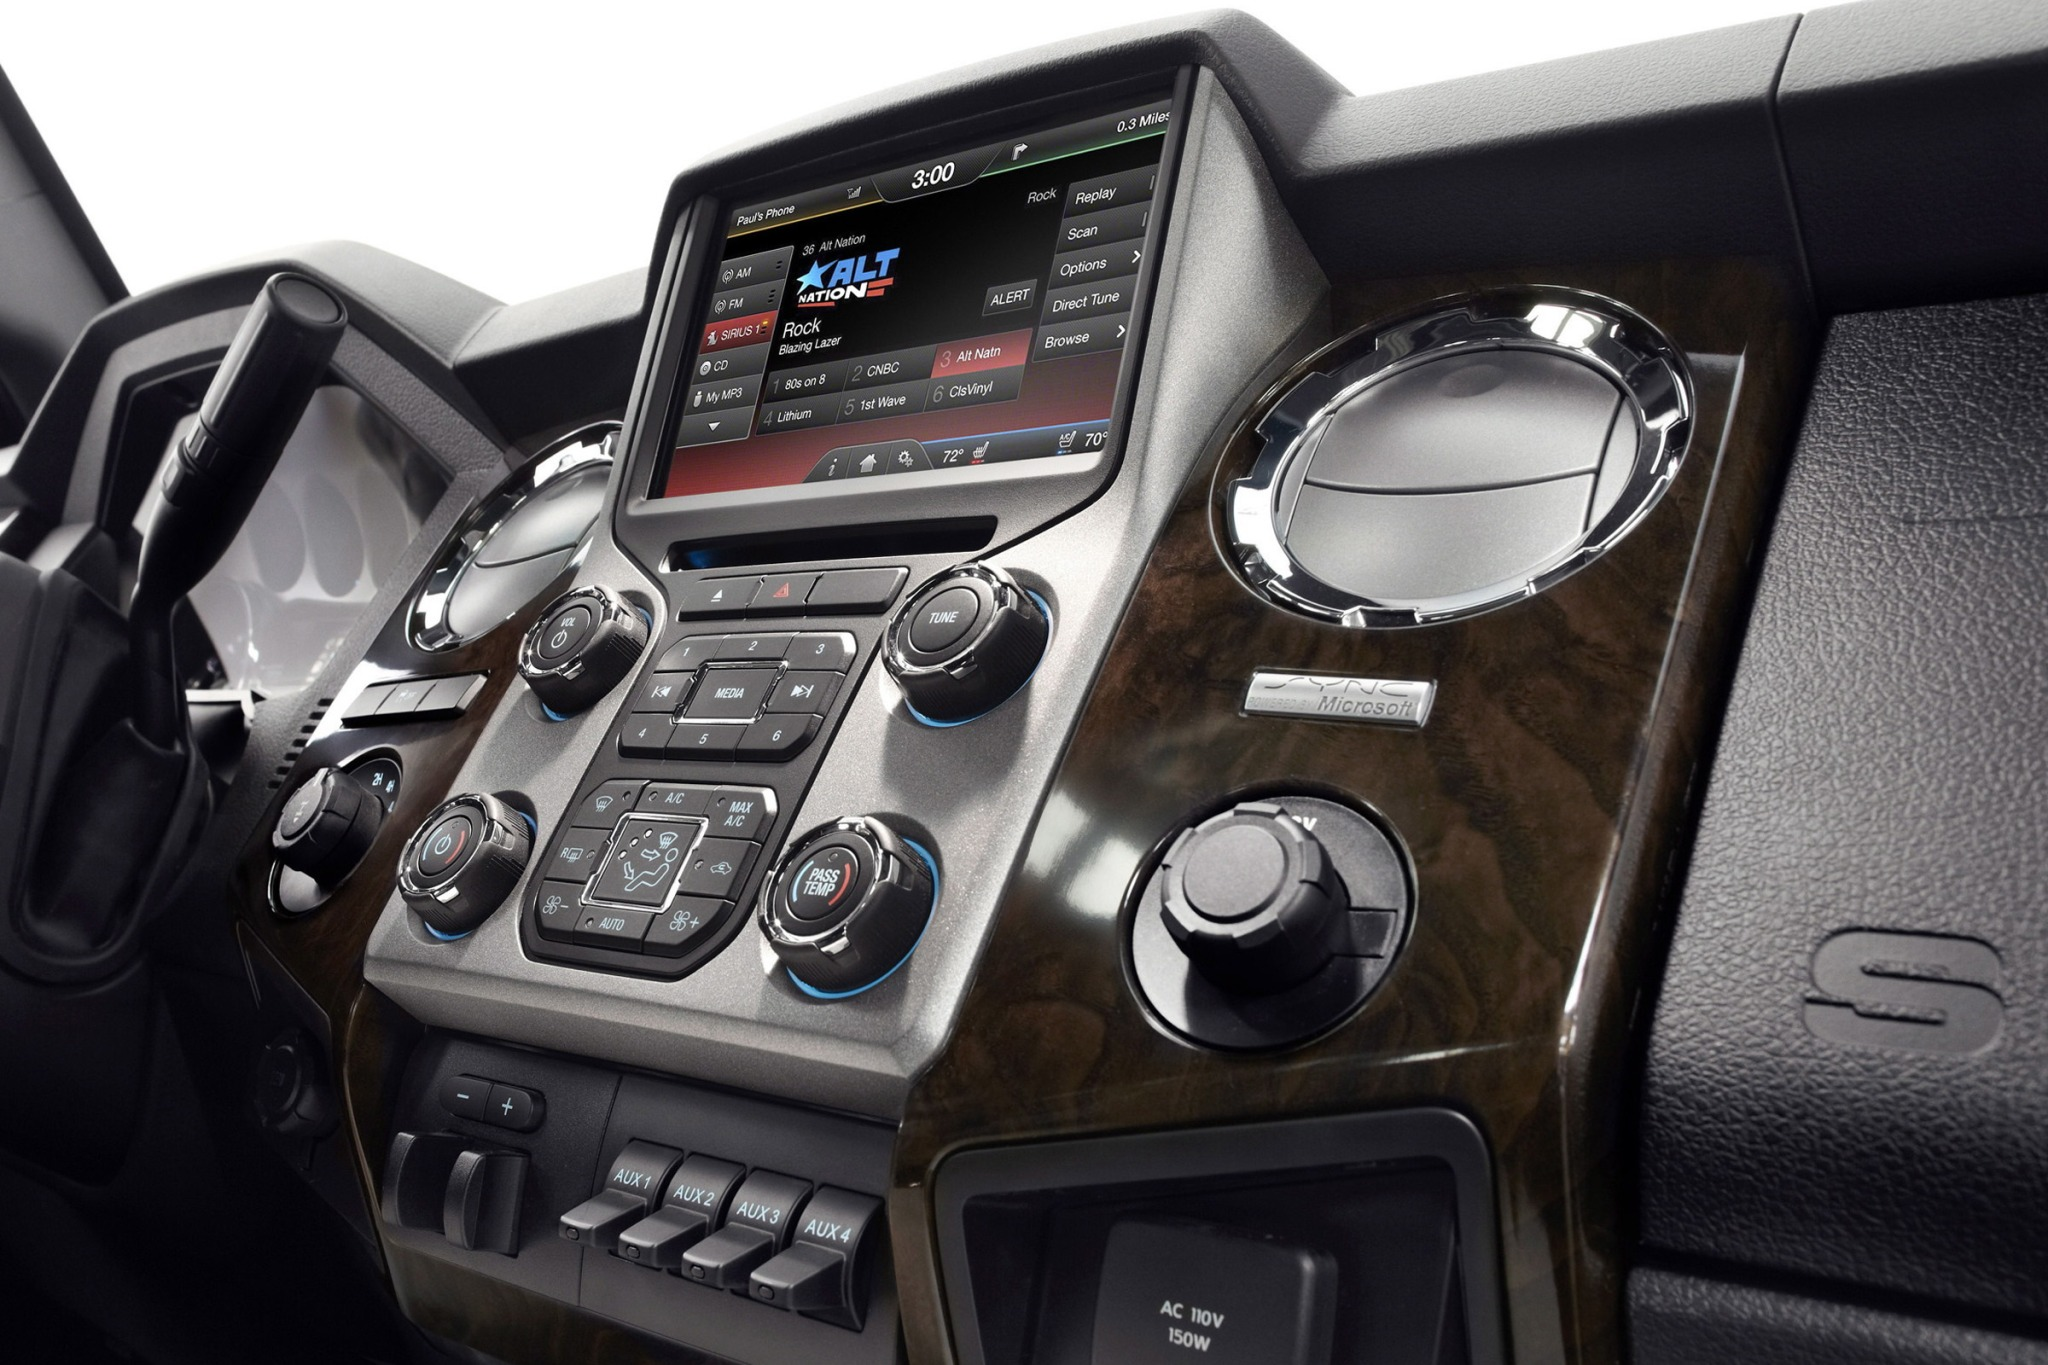 2013 Ford F-350 Super Dut interior #4